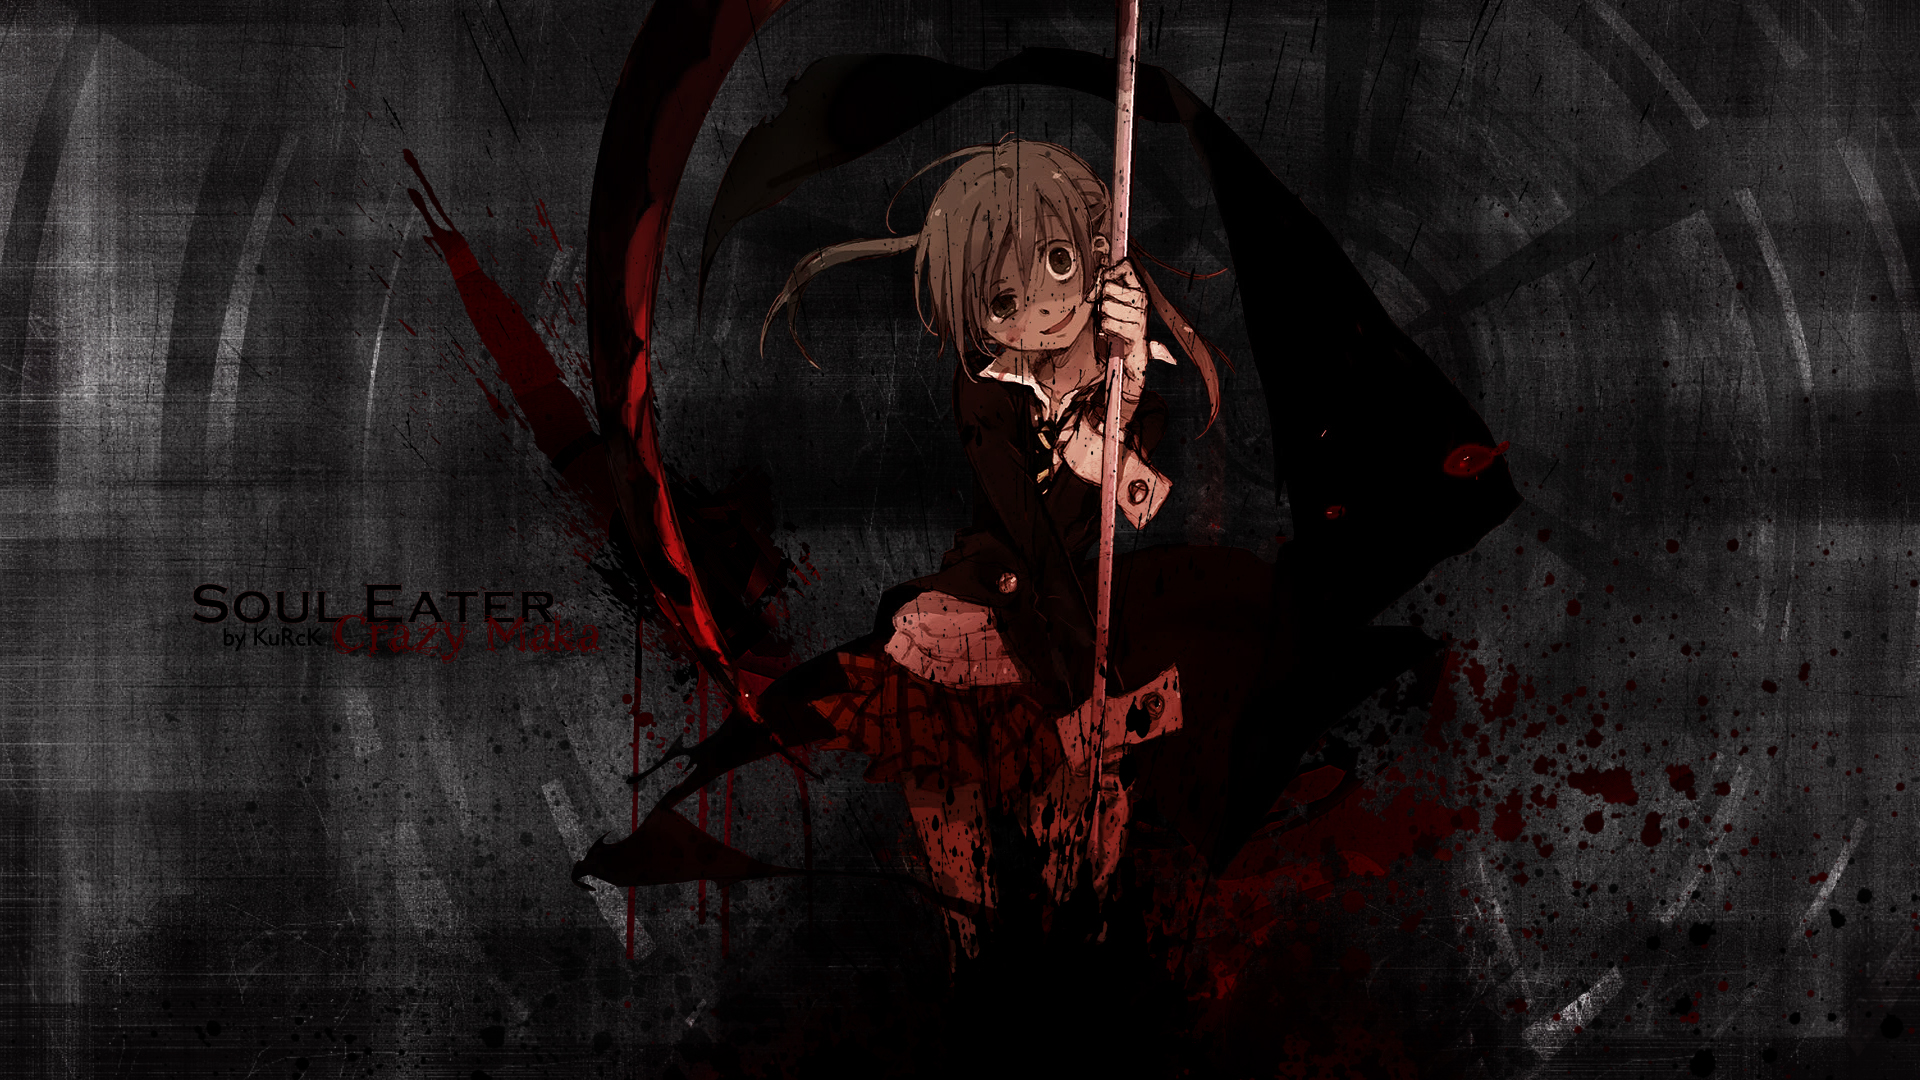 Soul eater wallpapers high quality download free soul eater wallpapers voltagebd Images